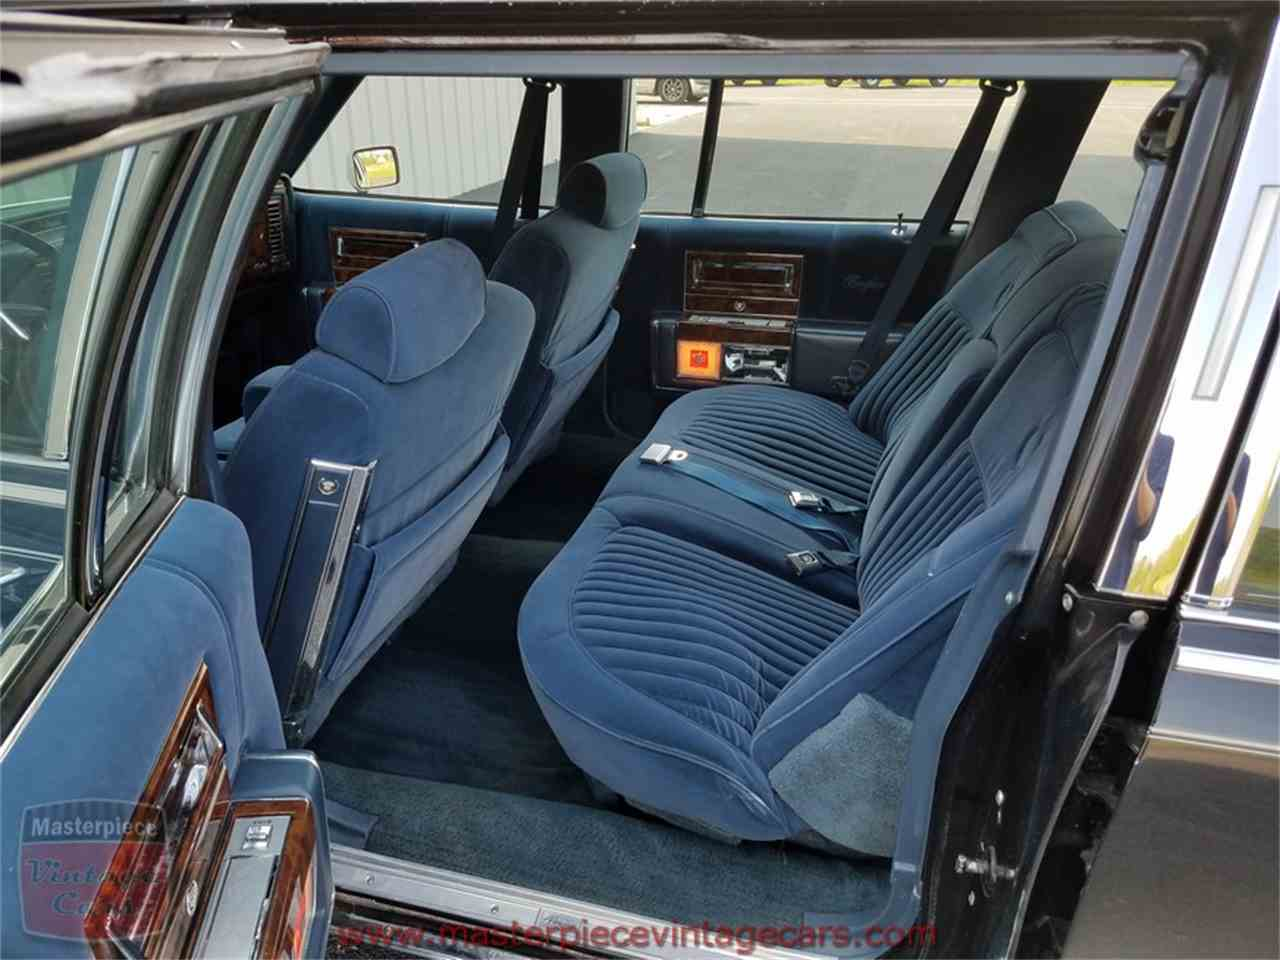 Large Picture of '91 Cadillac Limousine Offered by Masterpiece Vintage Cars - L3S4